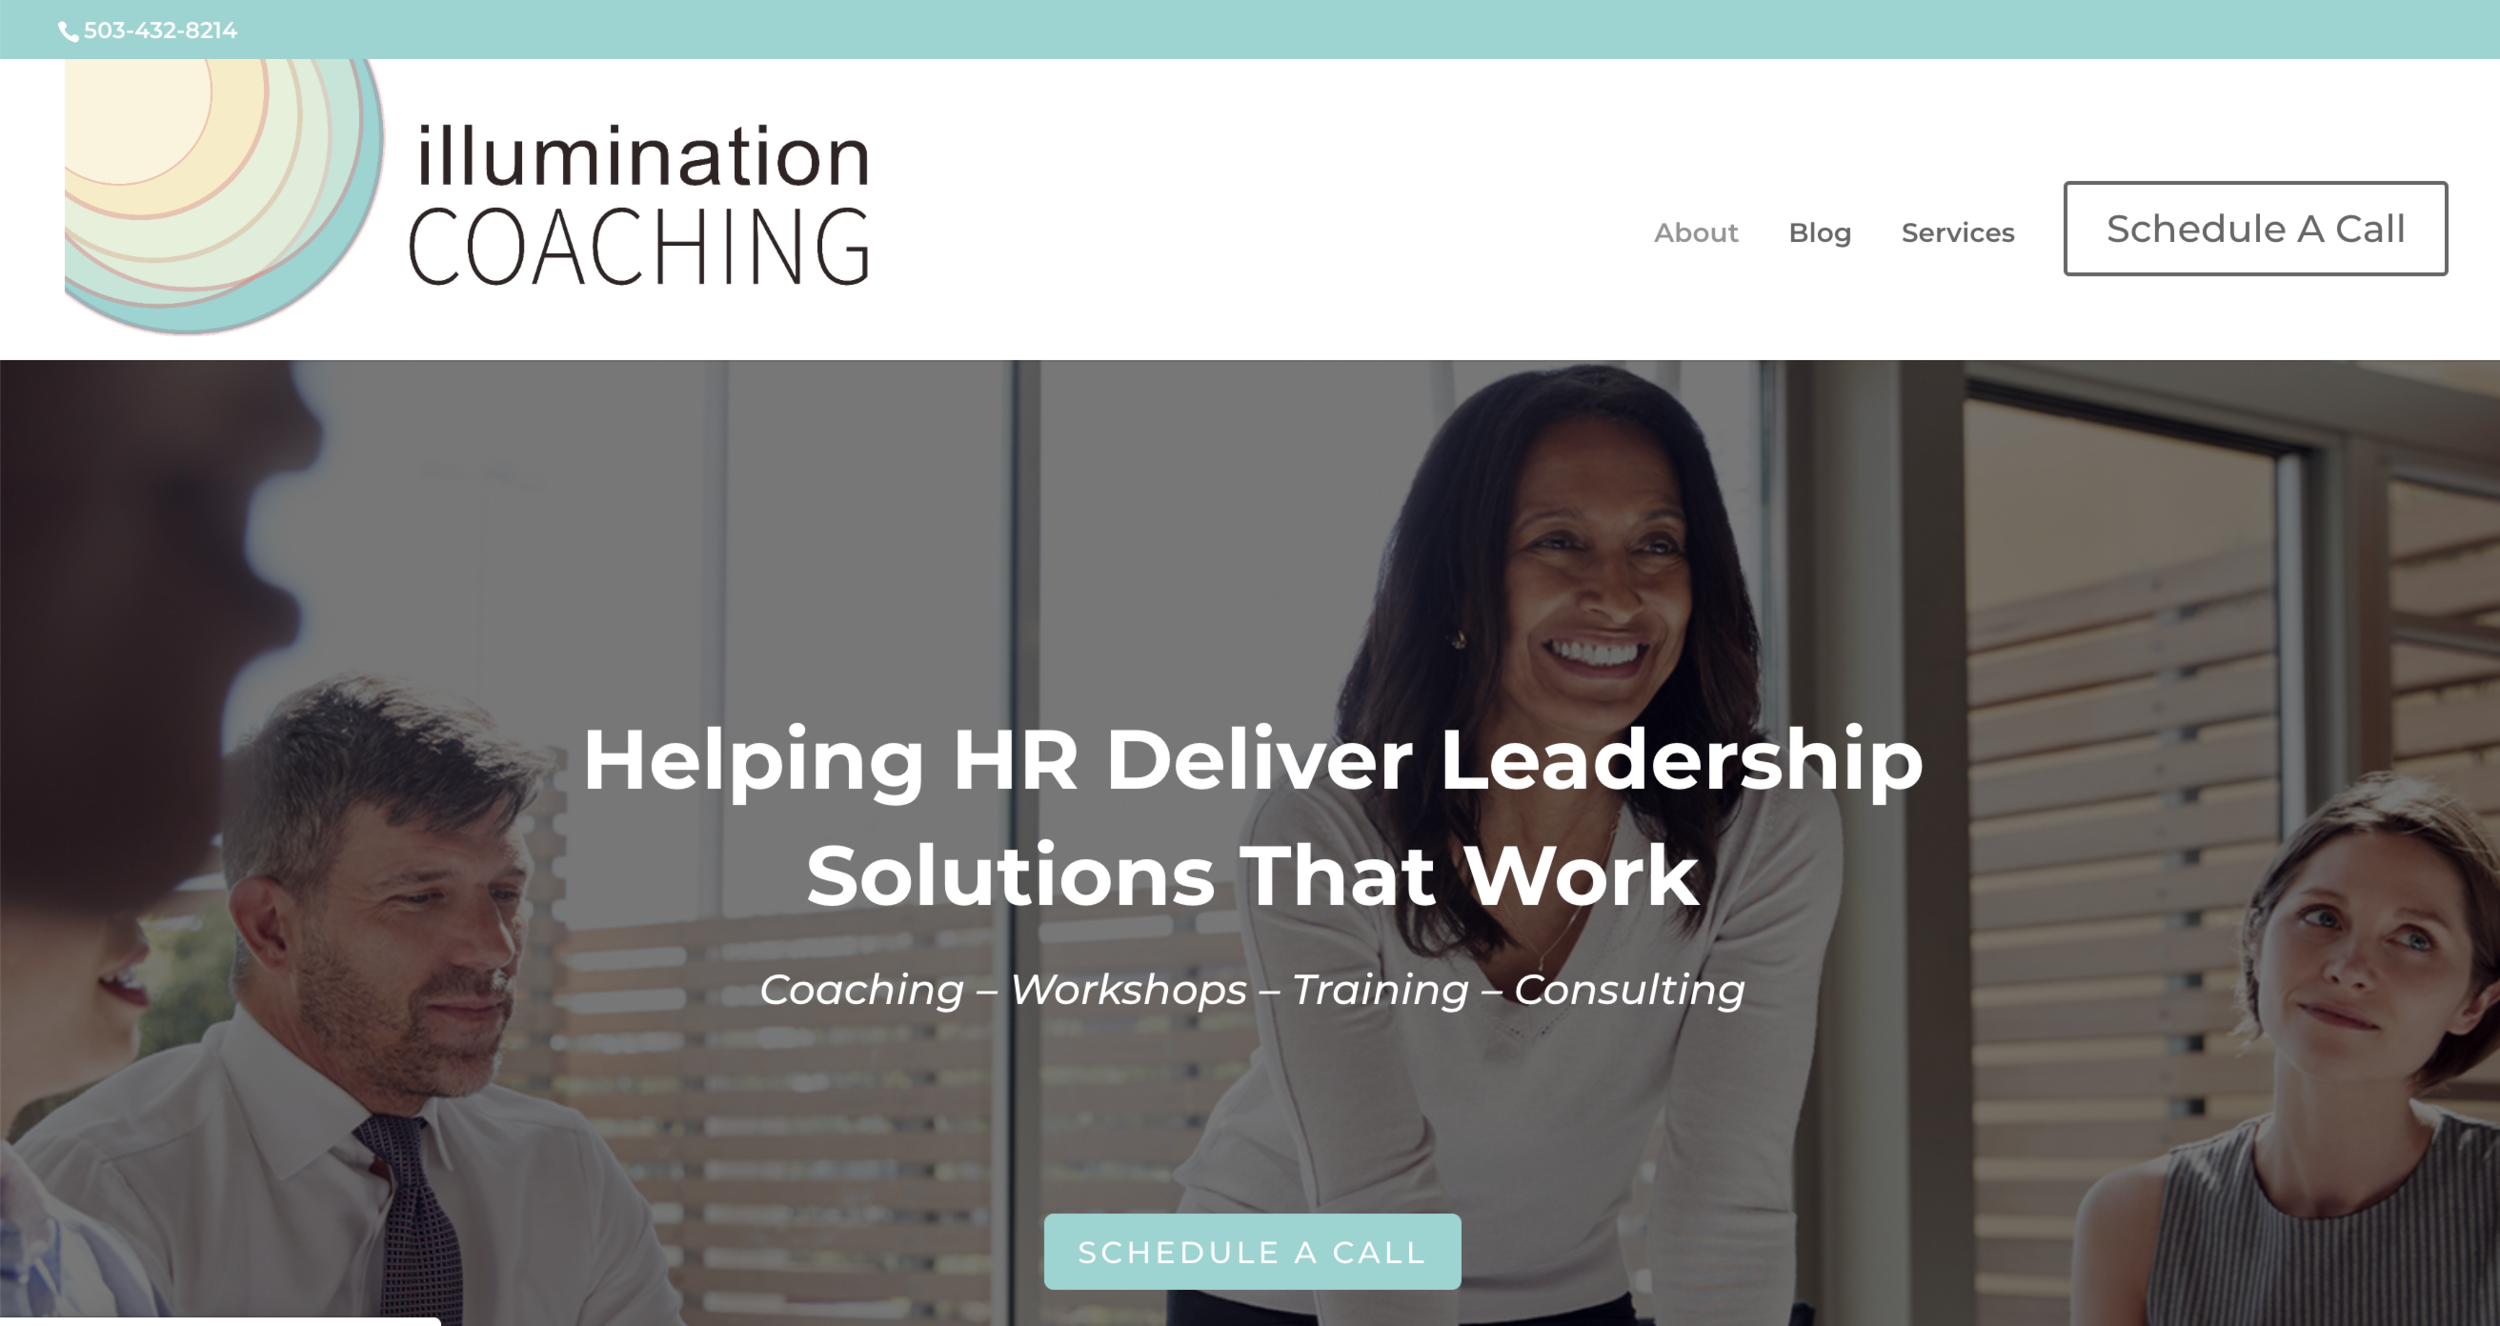 Illumination Coaching